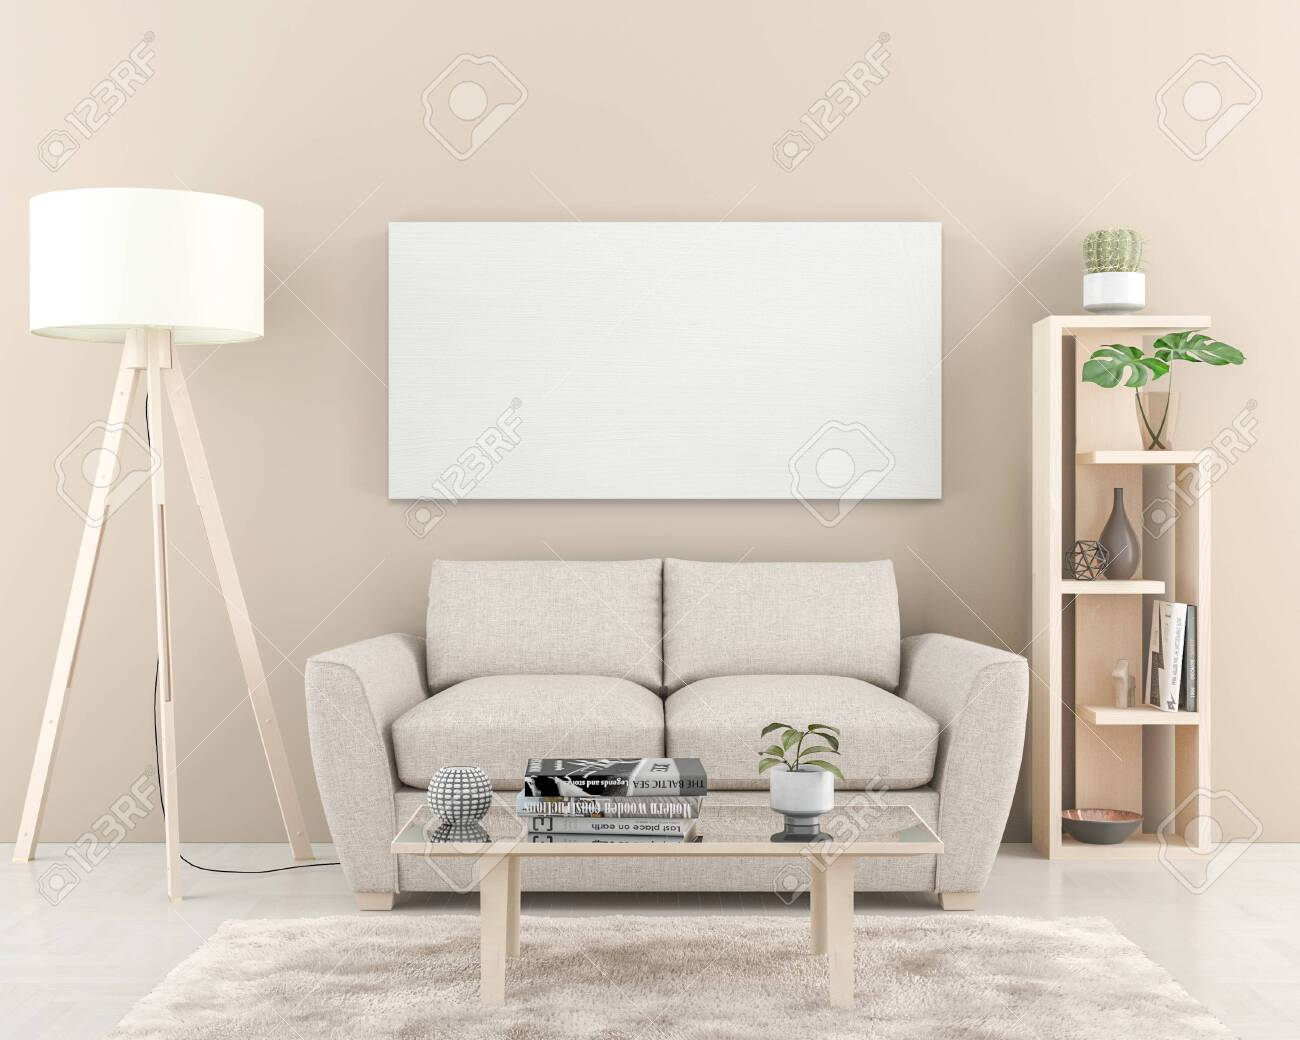 Interior wall with one big blank Canvas 180 x 90 cm. 3D render - 137399952